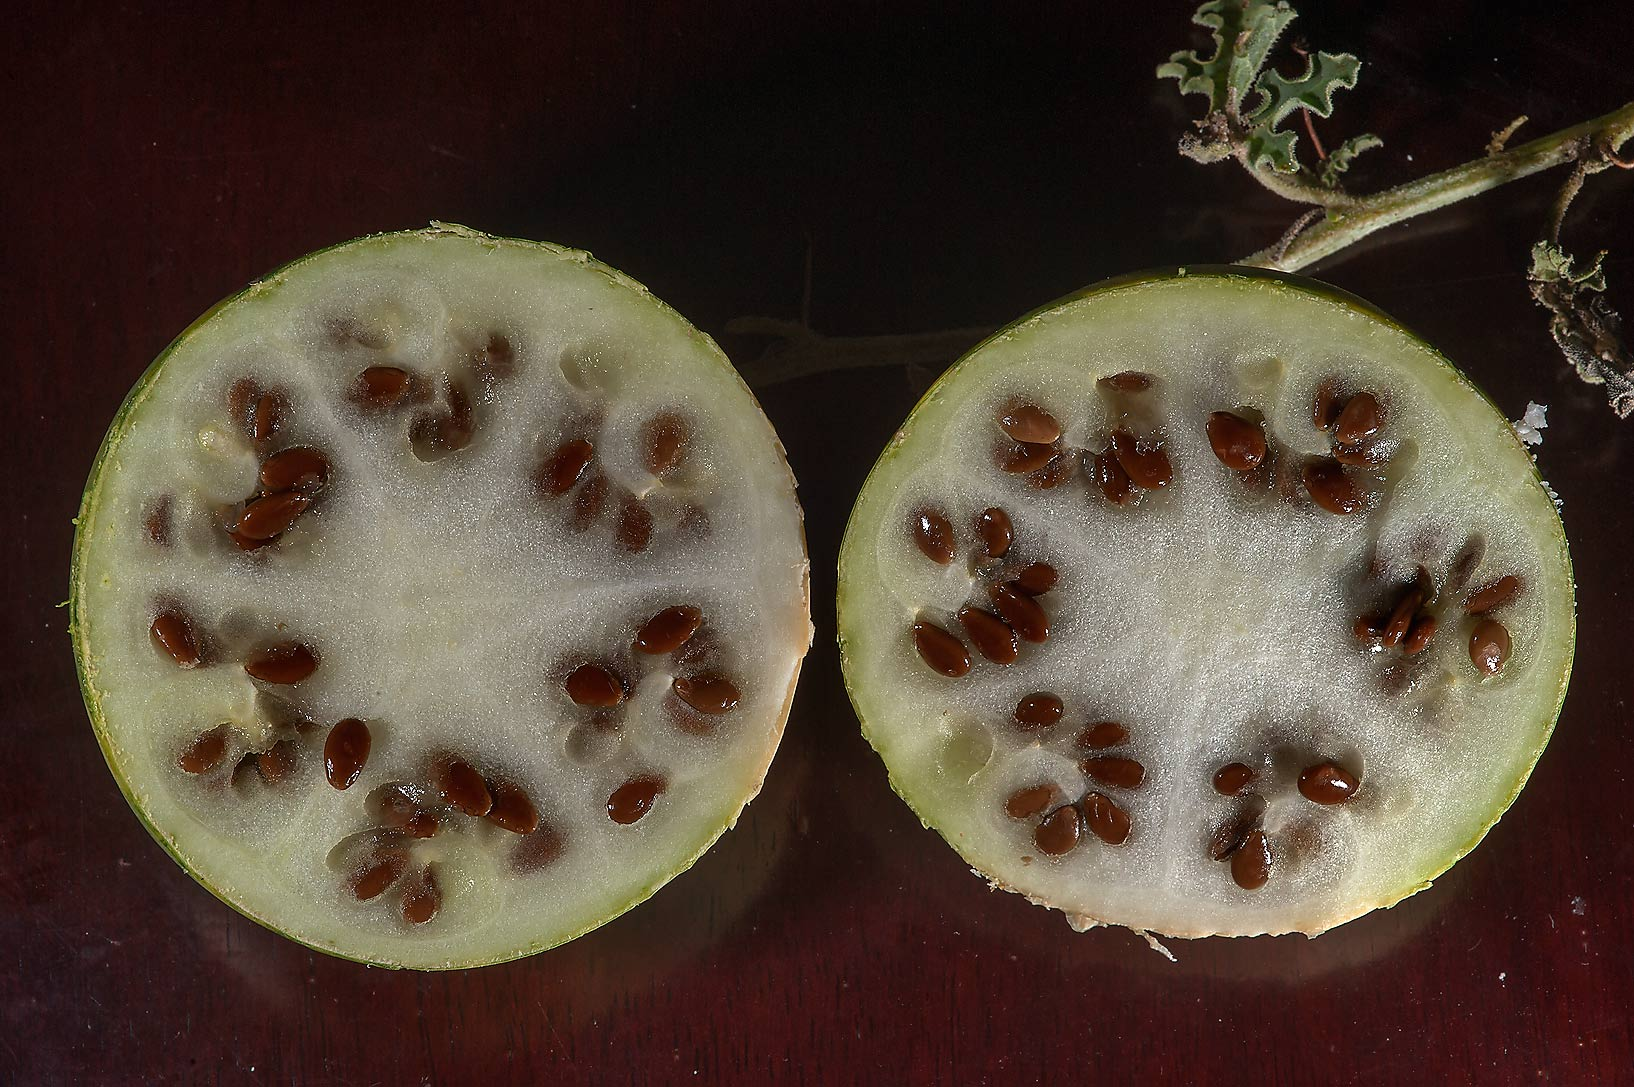 Dissected fruits of desert gourd Citrullus...Al Jumayliyah in north-western Qatar